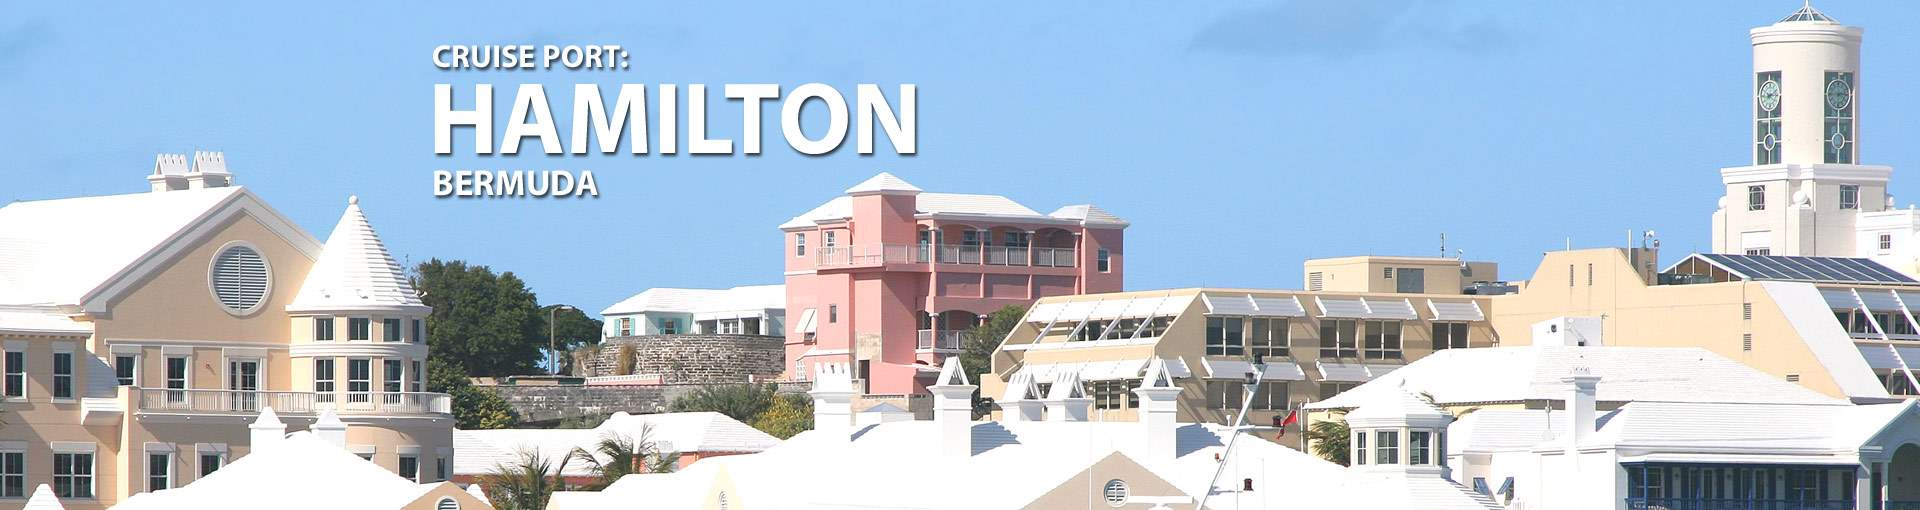 Cruises to Hamilton, Bermuda